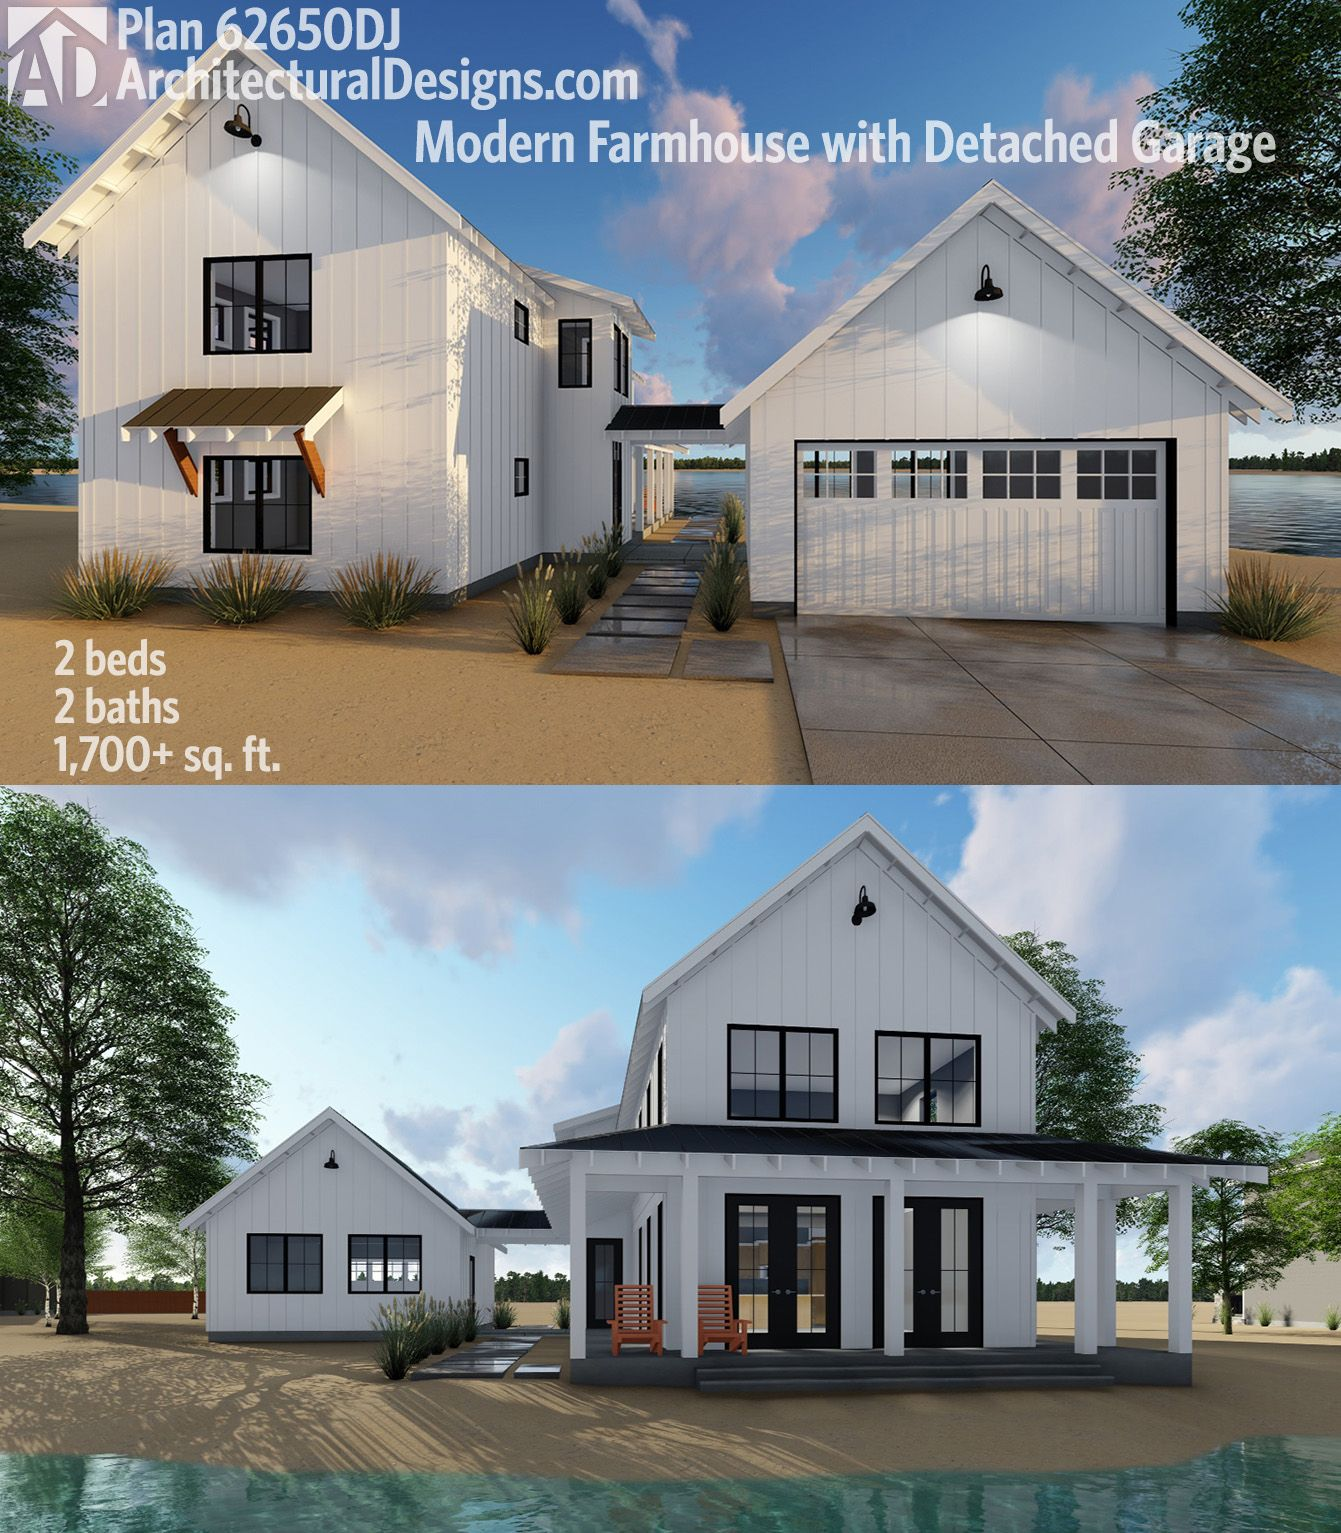 architectural designs modern farmhouse plan 62650dj 2 beds 2 baths 2 cars and